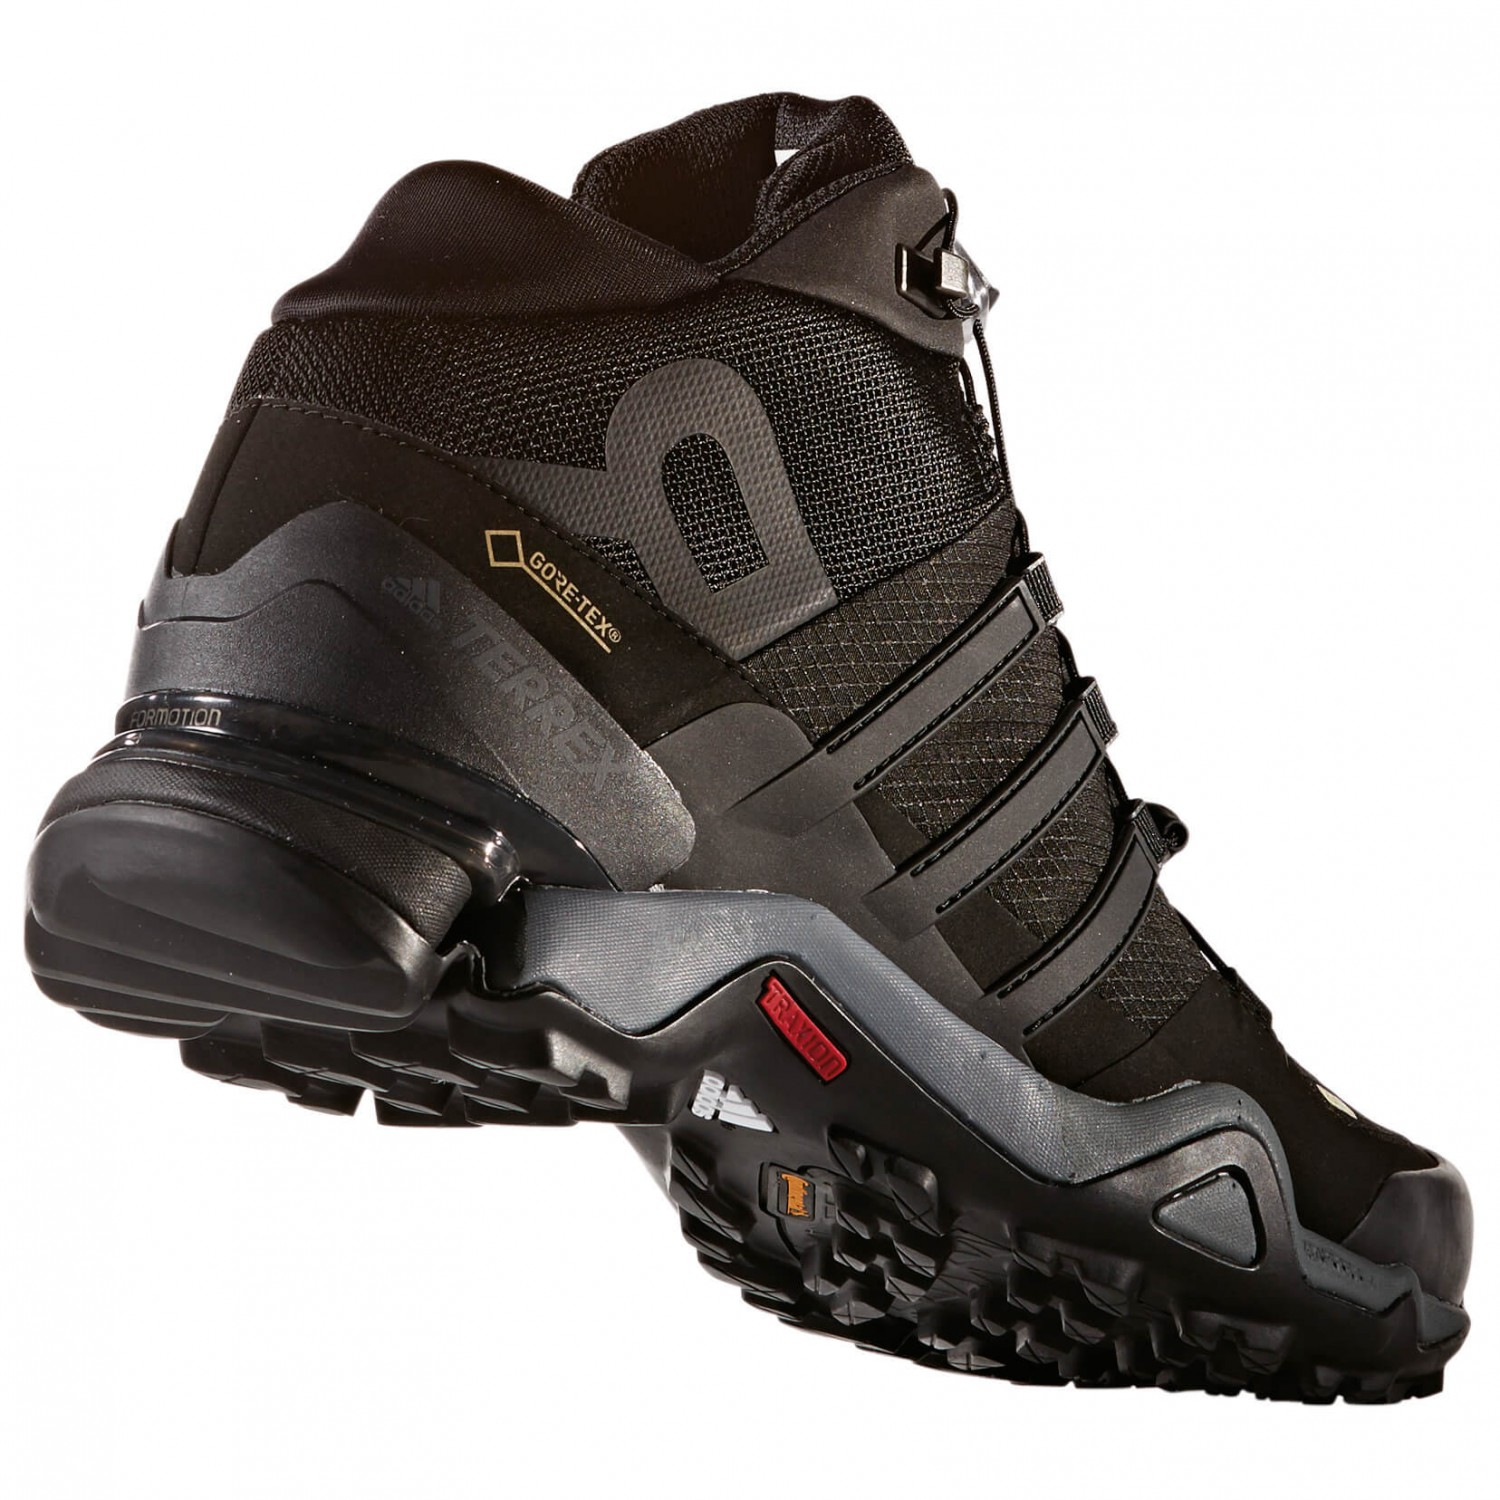 adidas terrex fast r mid gtx walking boots men 39 s free. Black Bedroom Furniture Sets. Home Design Ideas